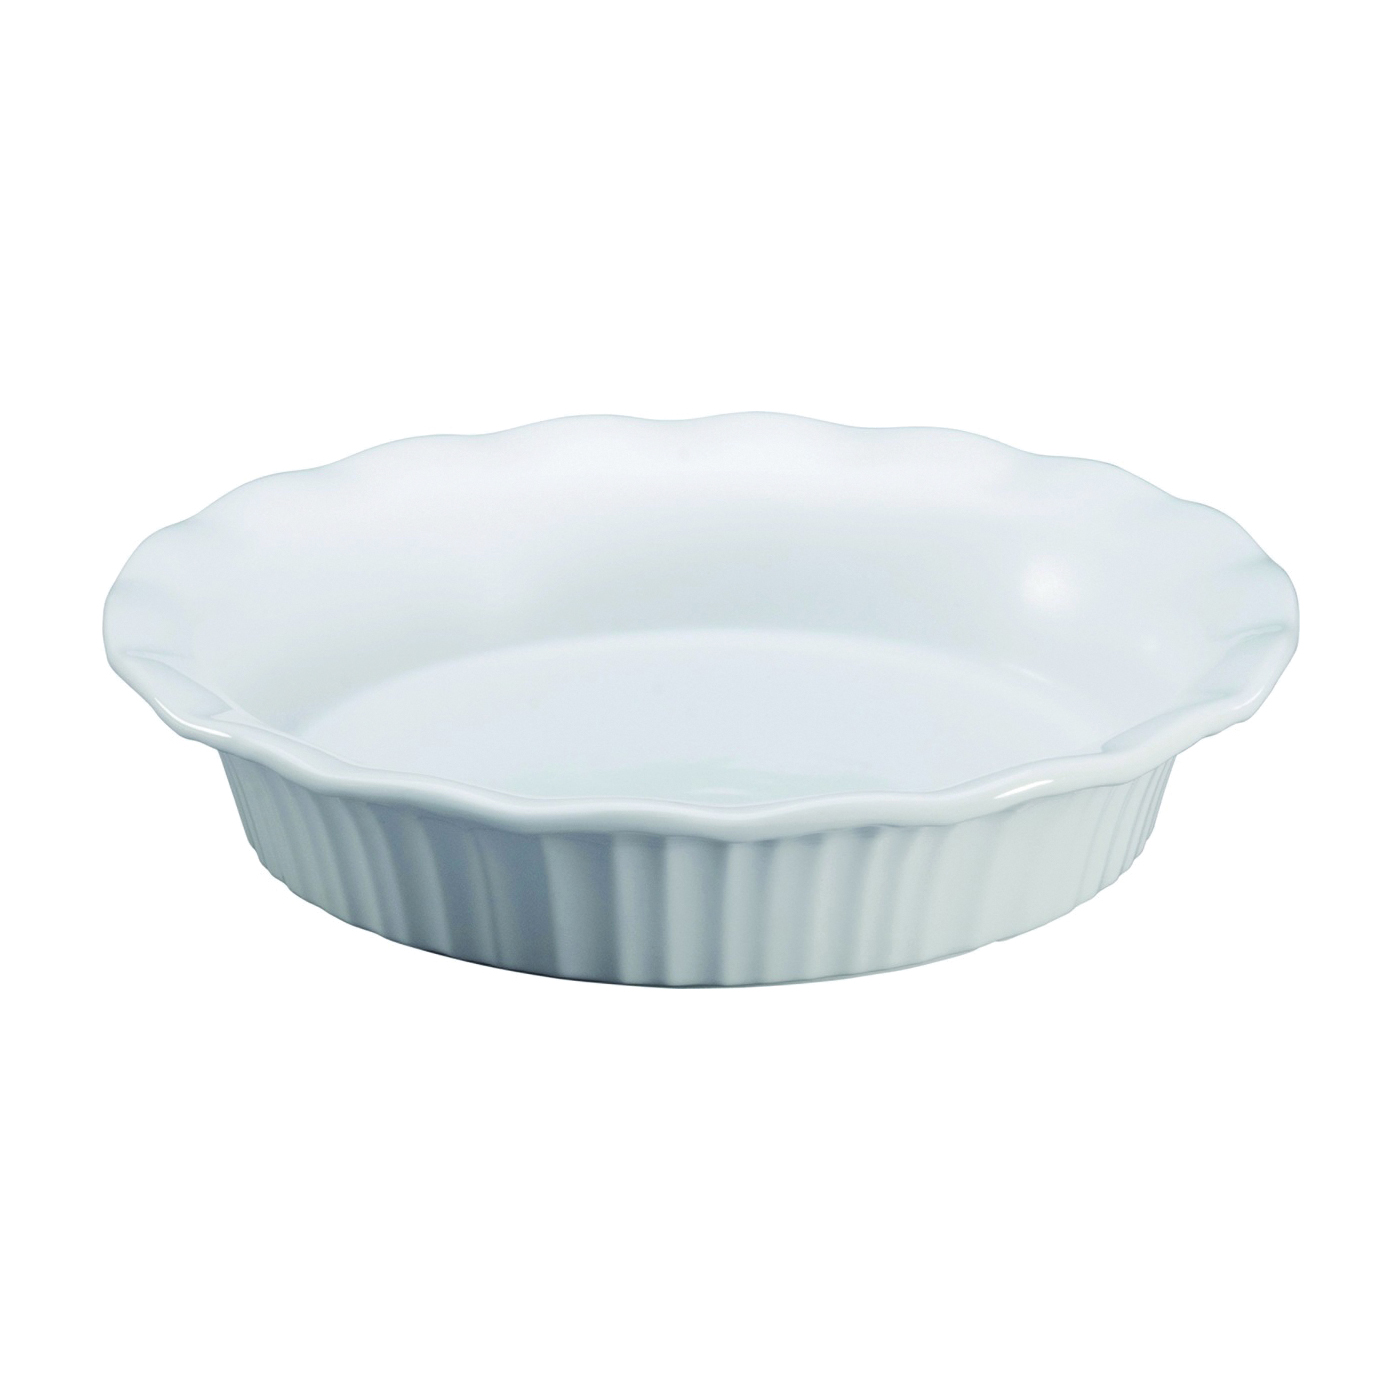 Picture of Corningware 1117314 Pie Plate, Ceramic, French White, Dishwasher Safe: Yes